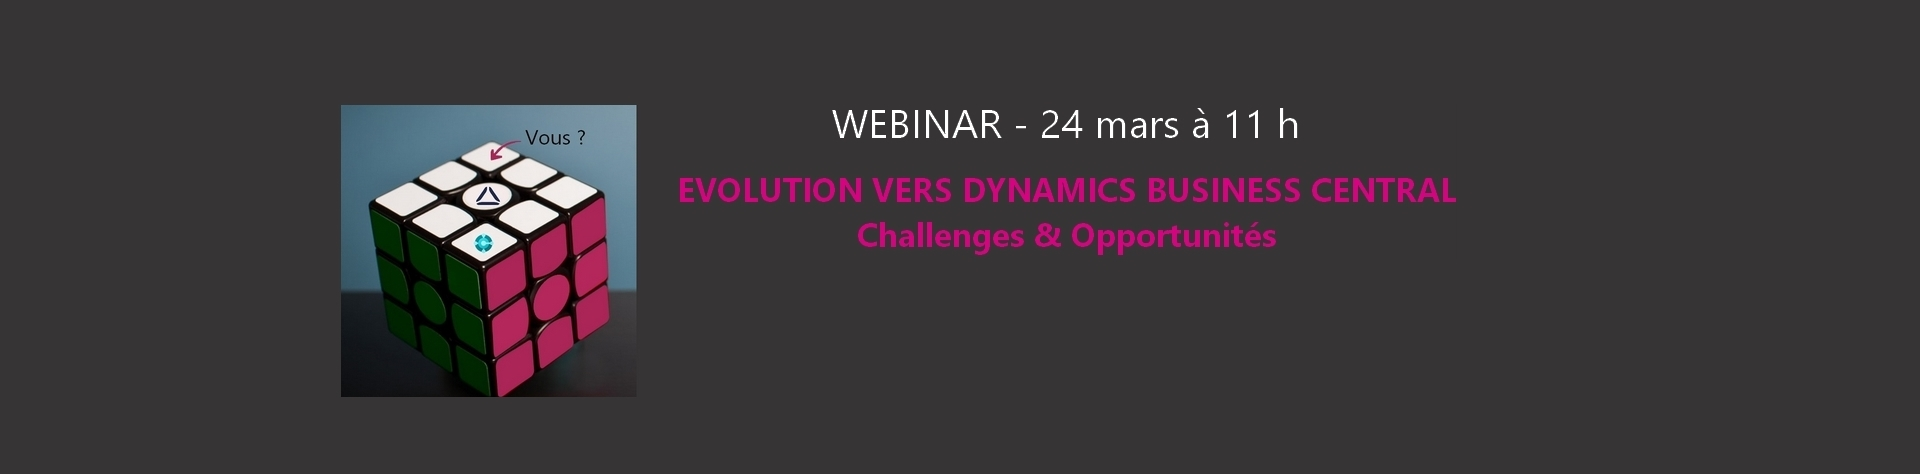 Webinar COSMO CONSULT le 24 mars 2020 : Evolution vers Dynamics Business Central, Challenges & Opportunités